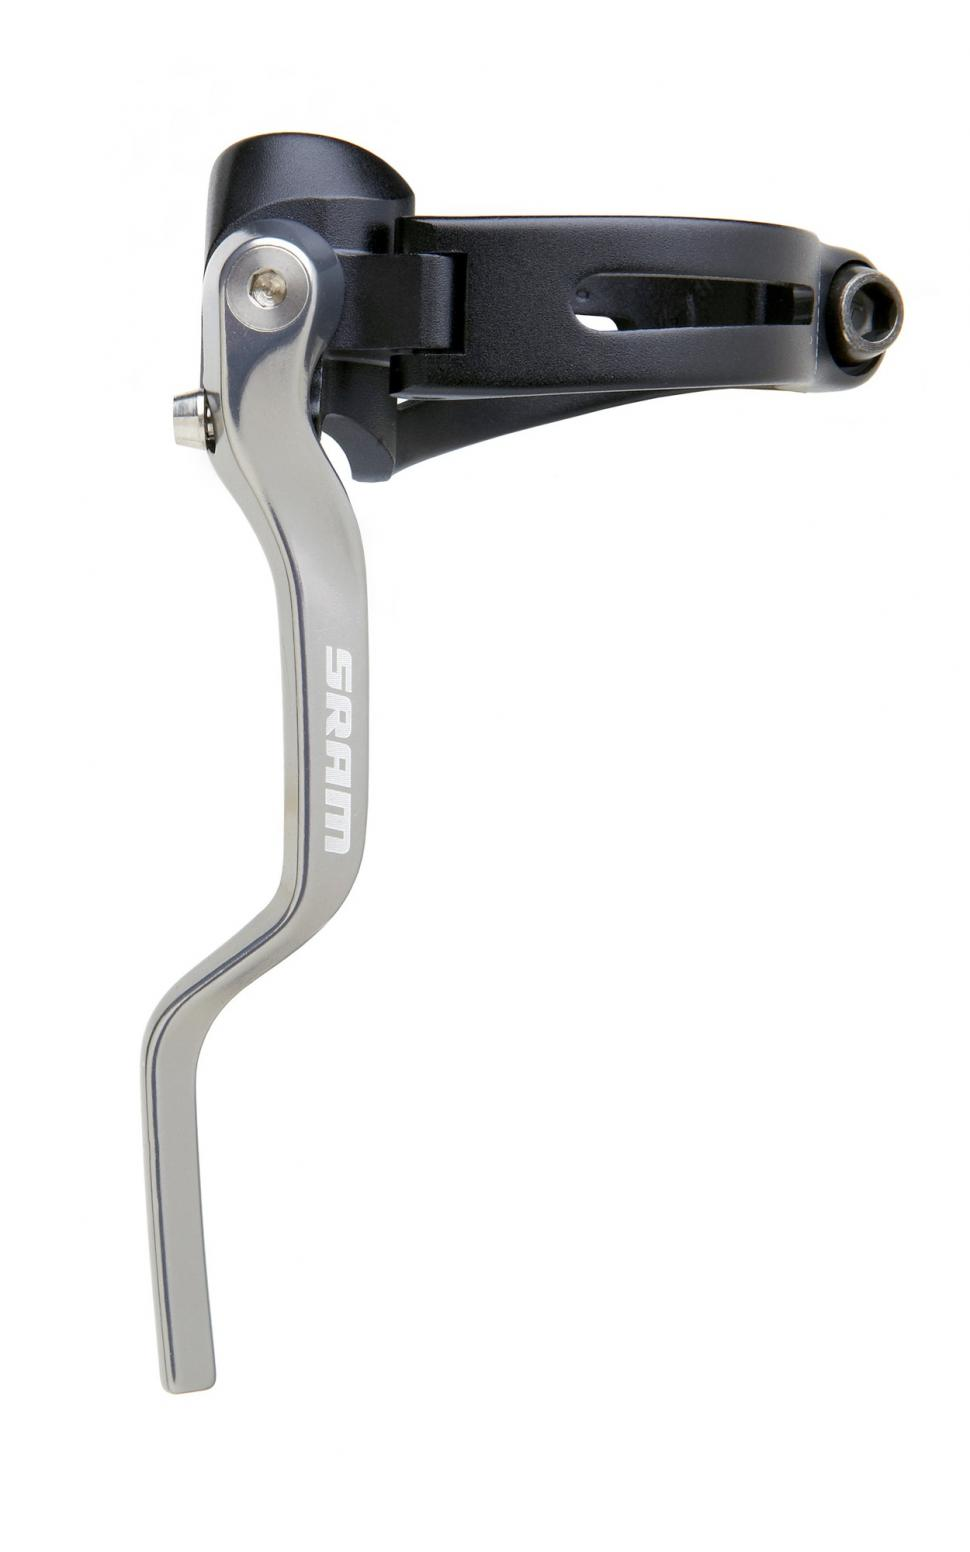 SRAM Front Derailleur Arm  with Chain Spotter- Front view